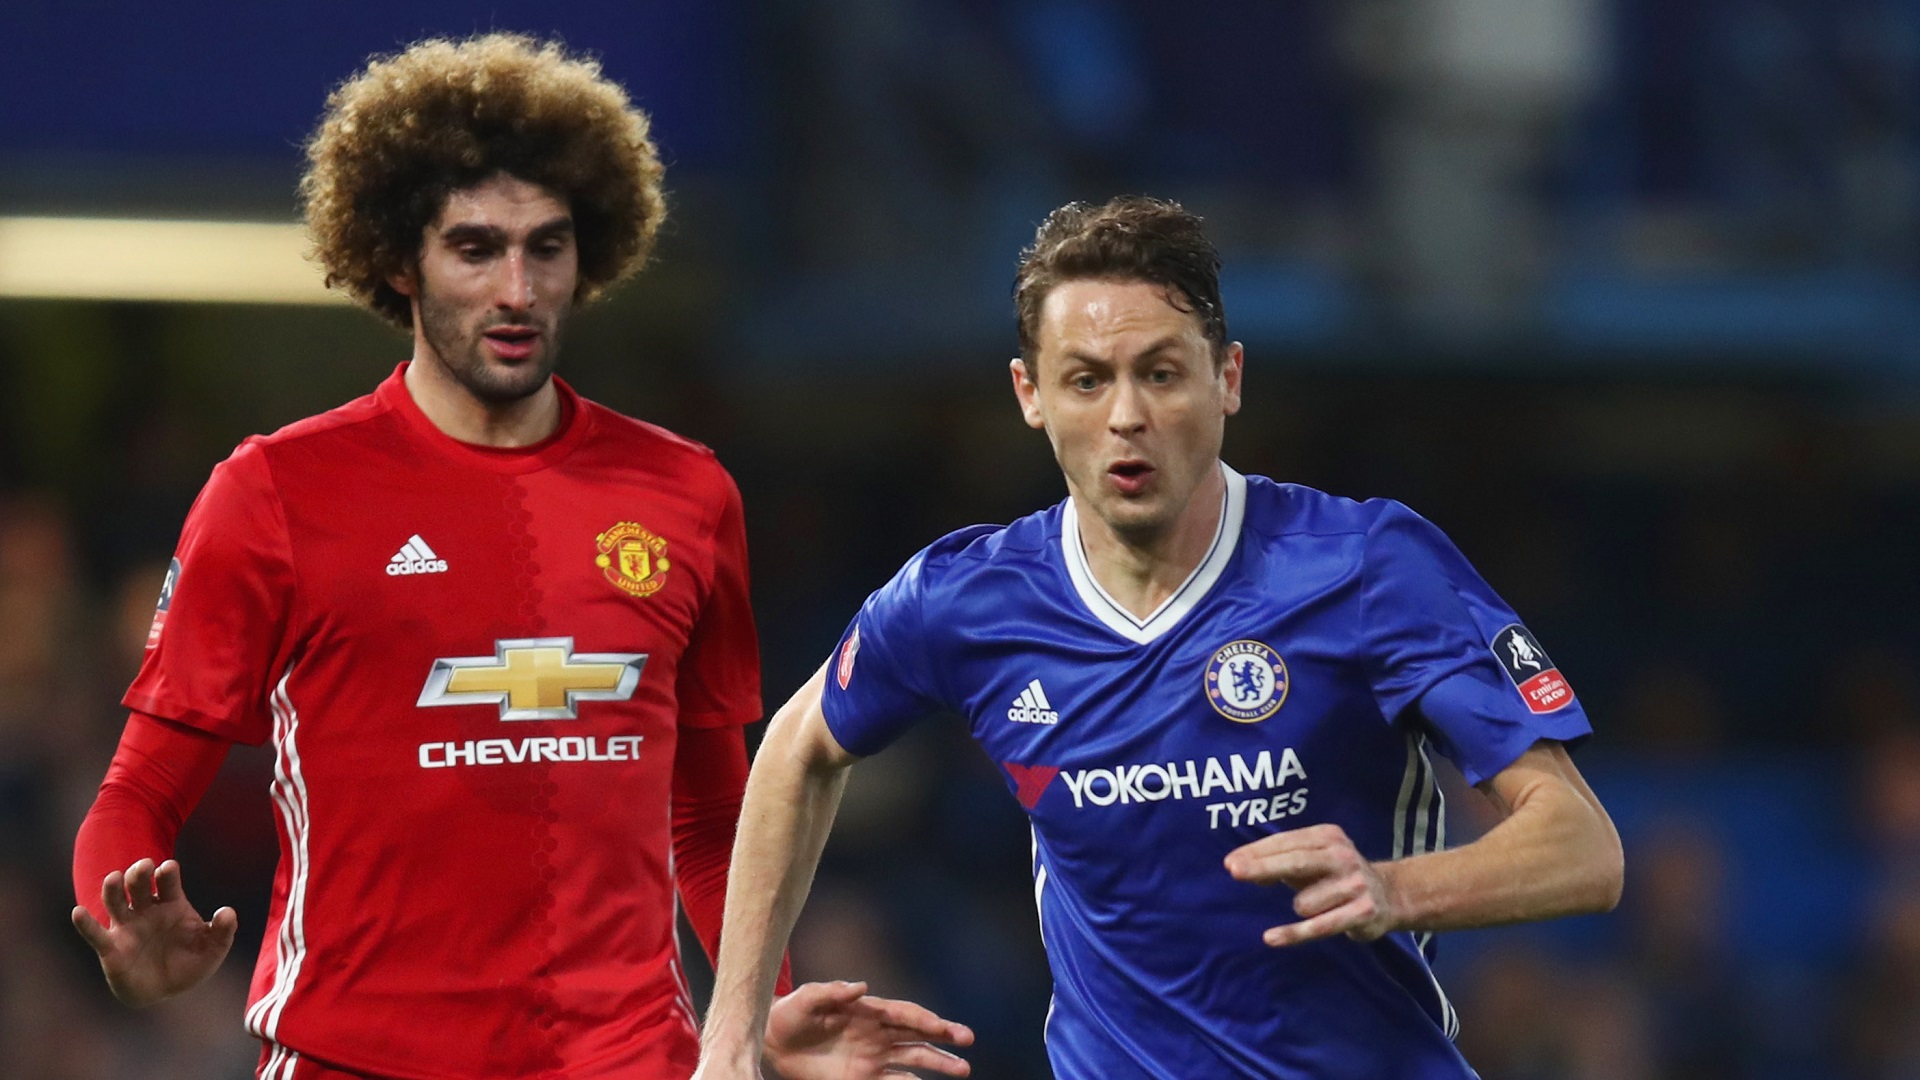 Serbian midfielder Matic moves to Manchester United